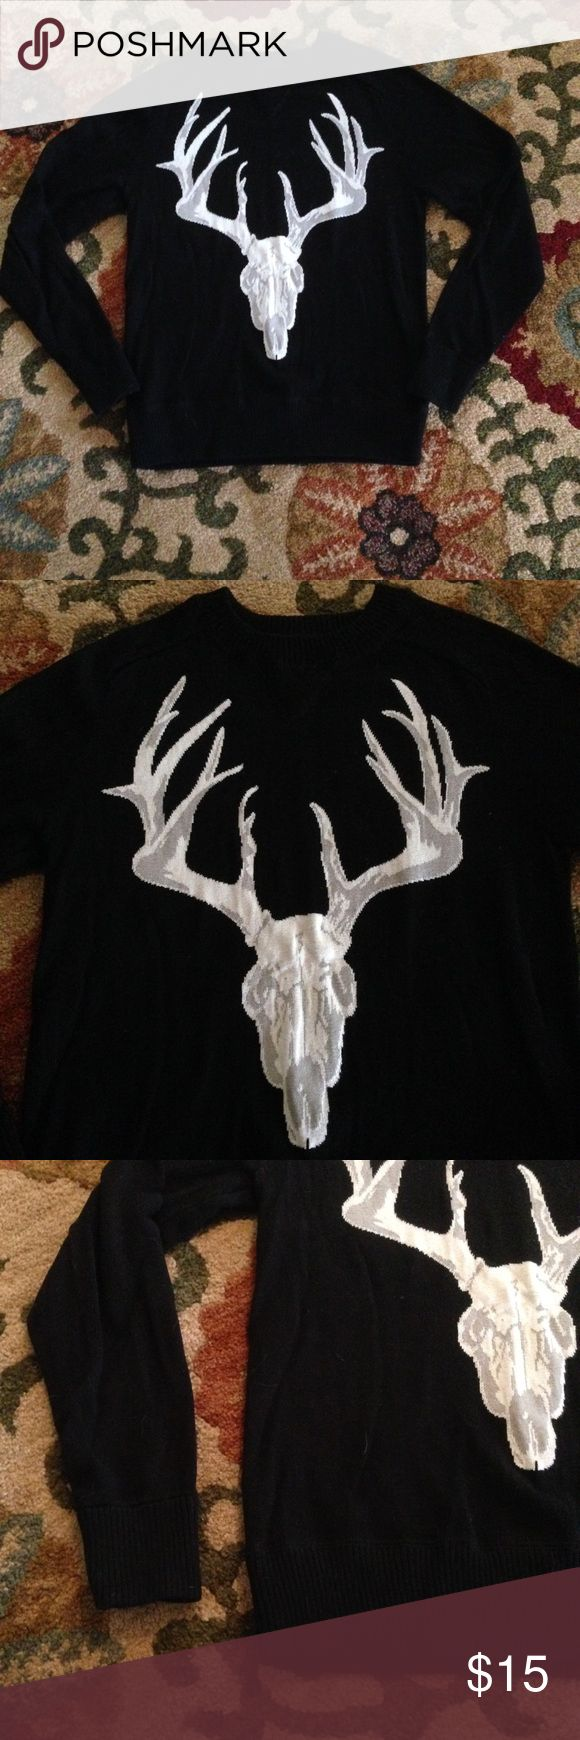 💀Black Skull sweater deer target cotton Christmas Mossimo brand. The skull is woven into the sweater. Not an appliqué. It has ribbing around neck, sleeves and hem. Worn maybe once. 100% cotton.  I also have a NWT XXL for sale. Mossimo Supply Co. Sweaters Crewneck